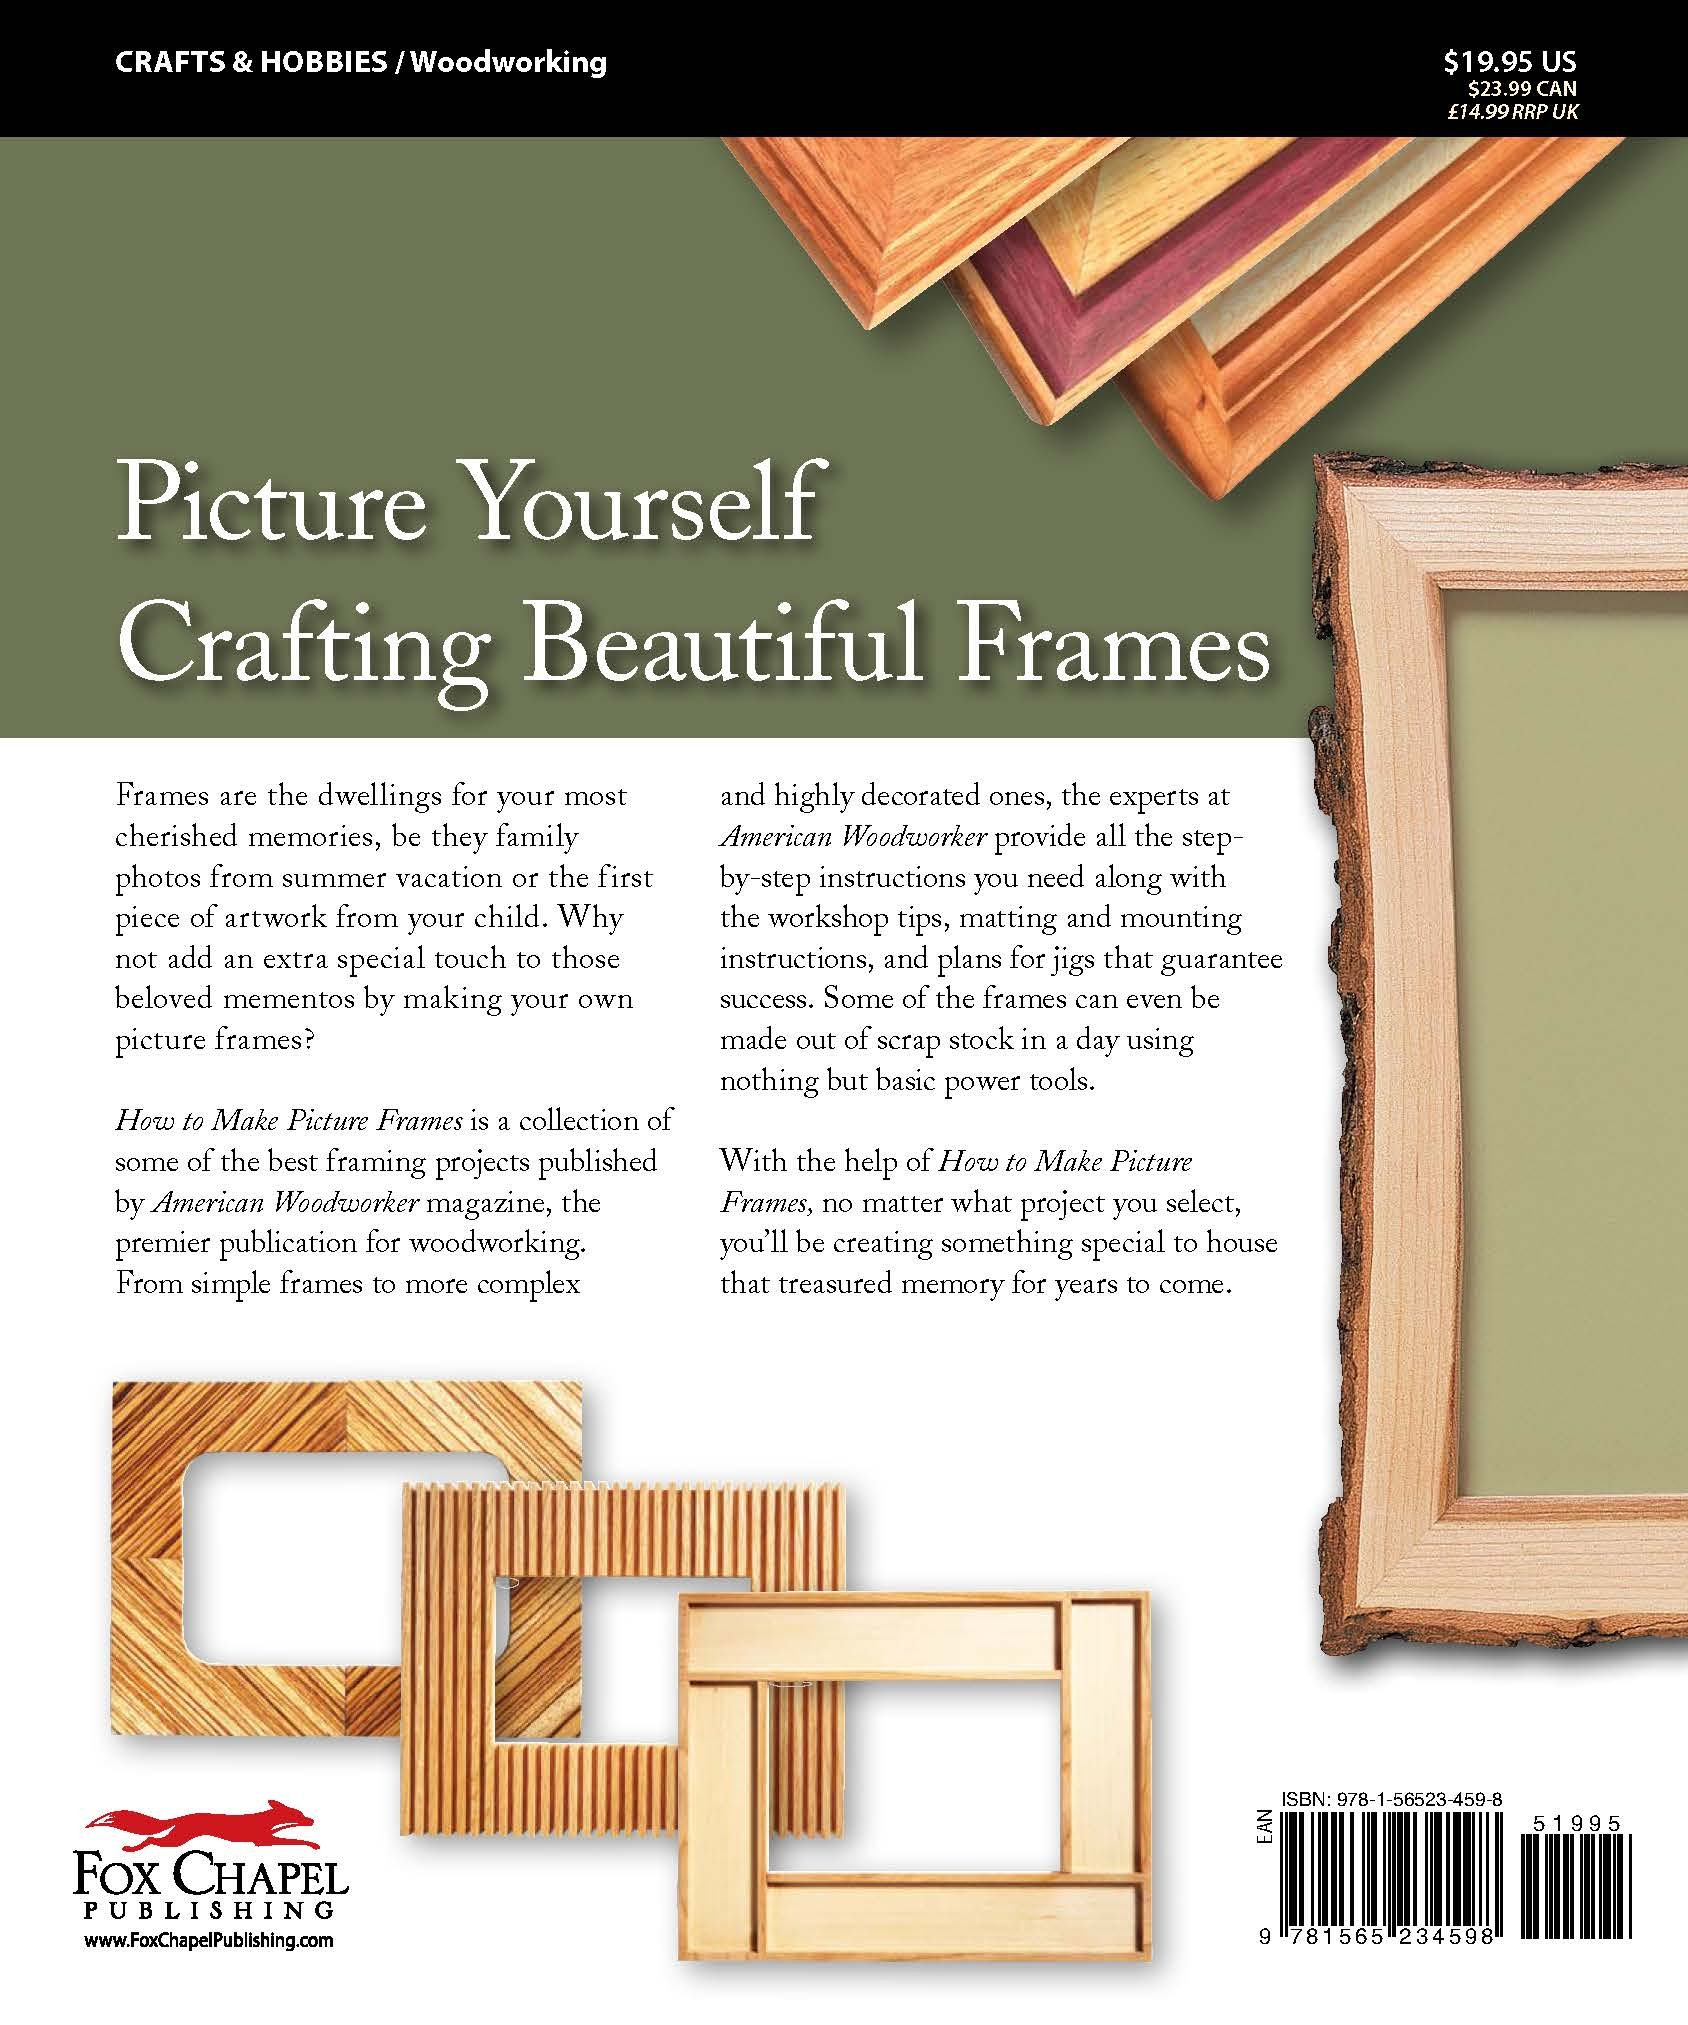 How to Make Picture Frames (Best of AW): 12 Simple to Stylish ...